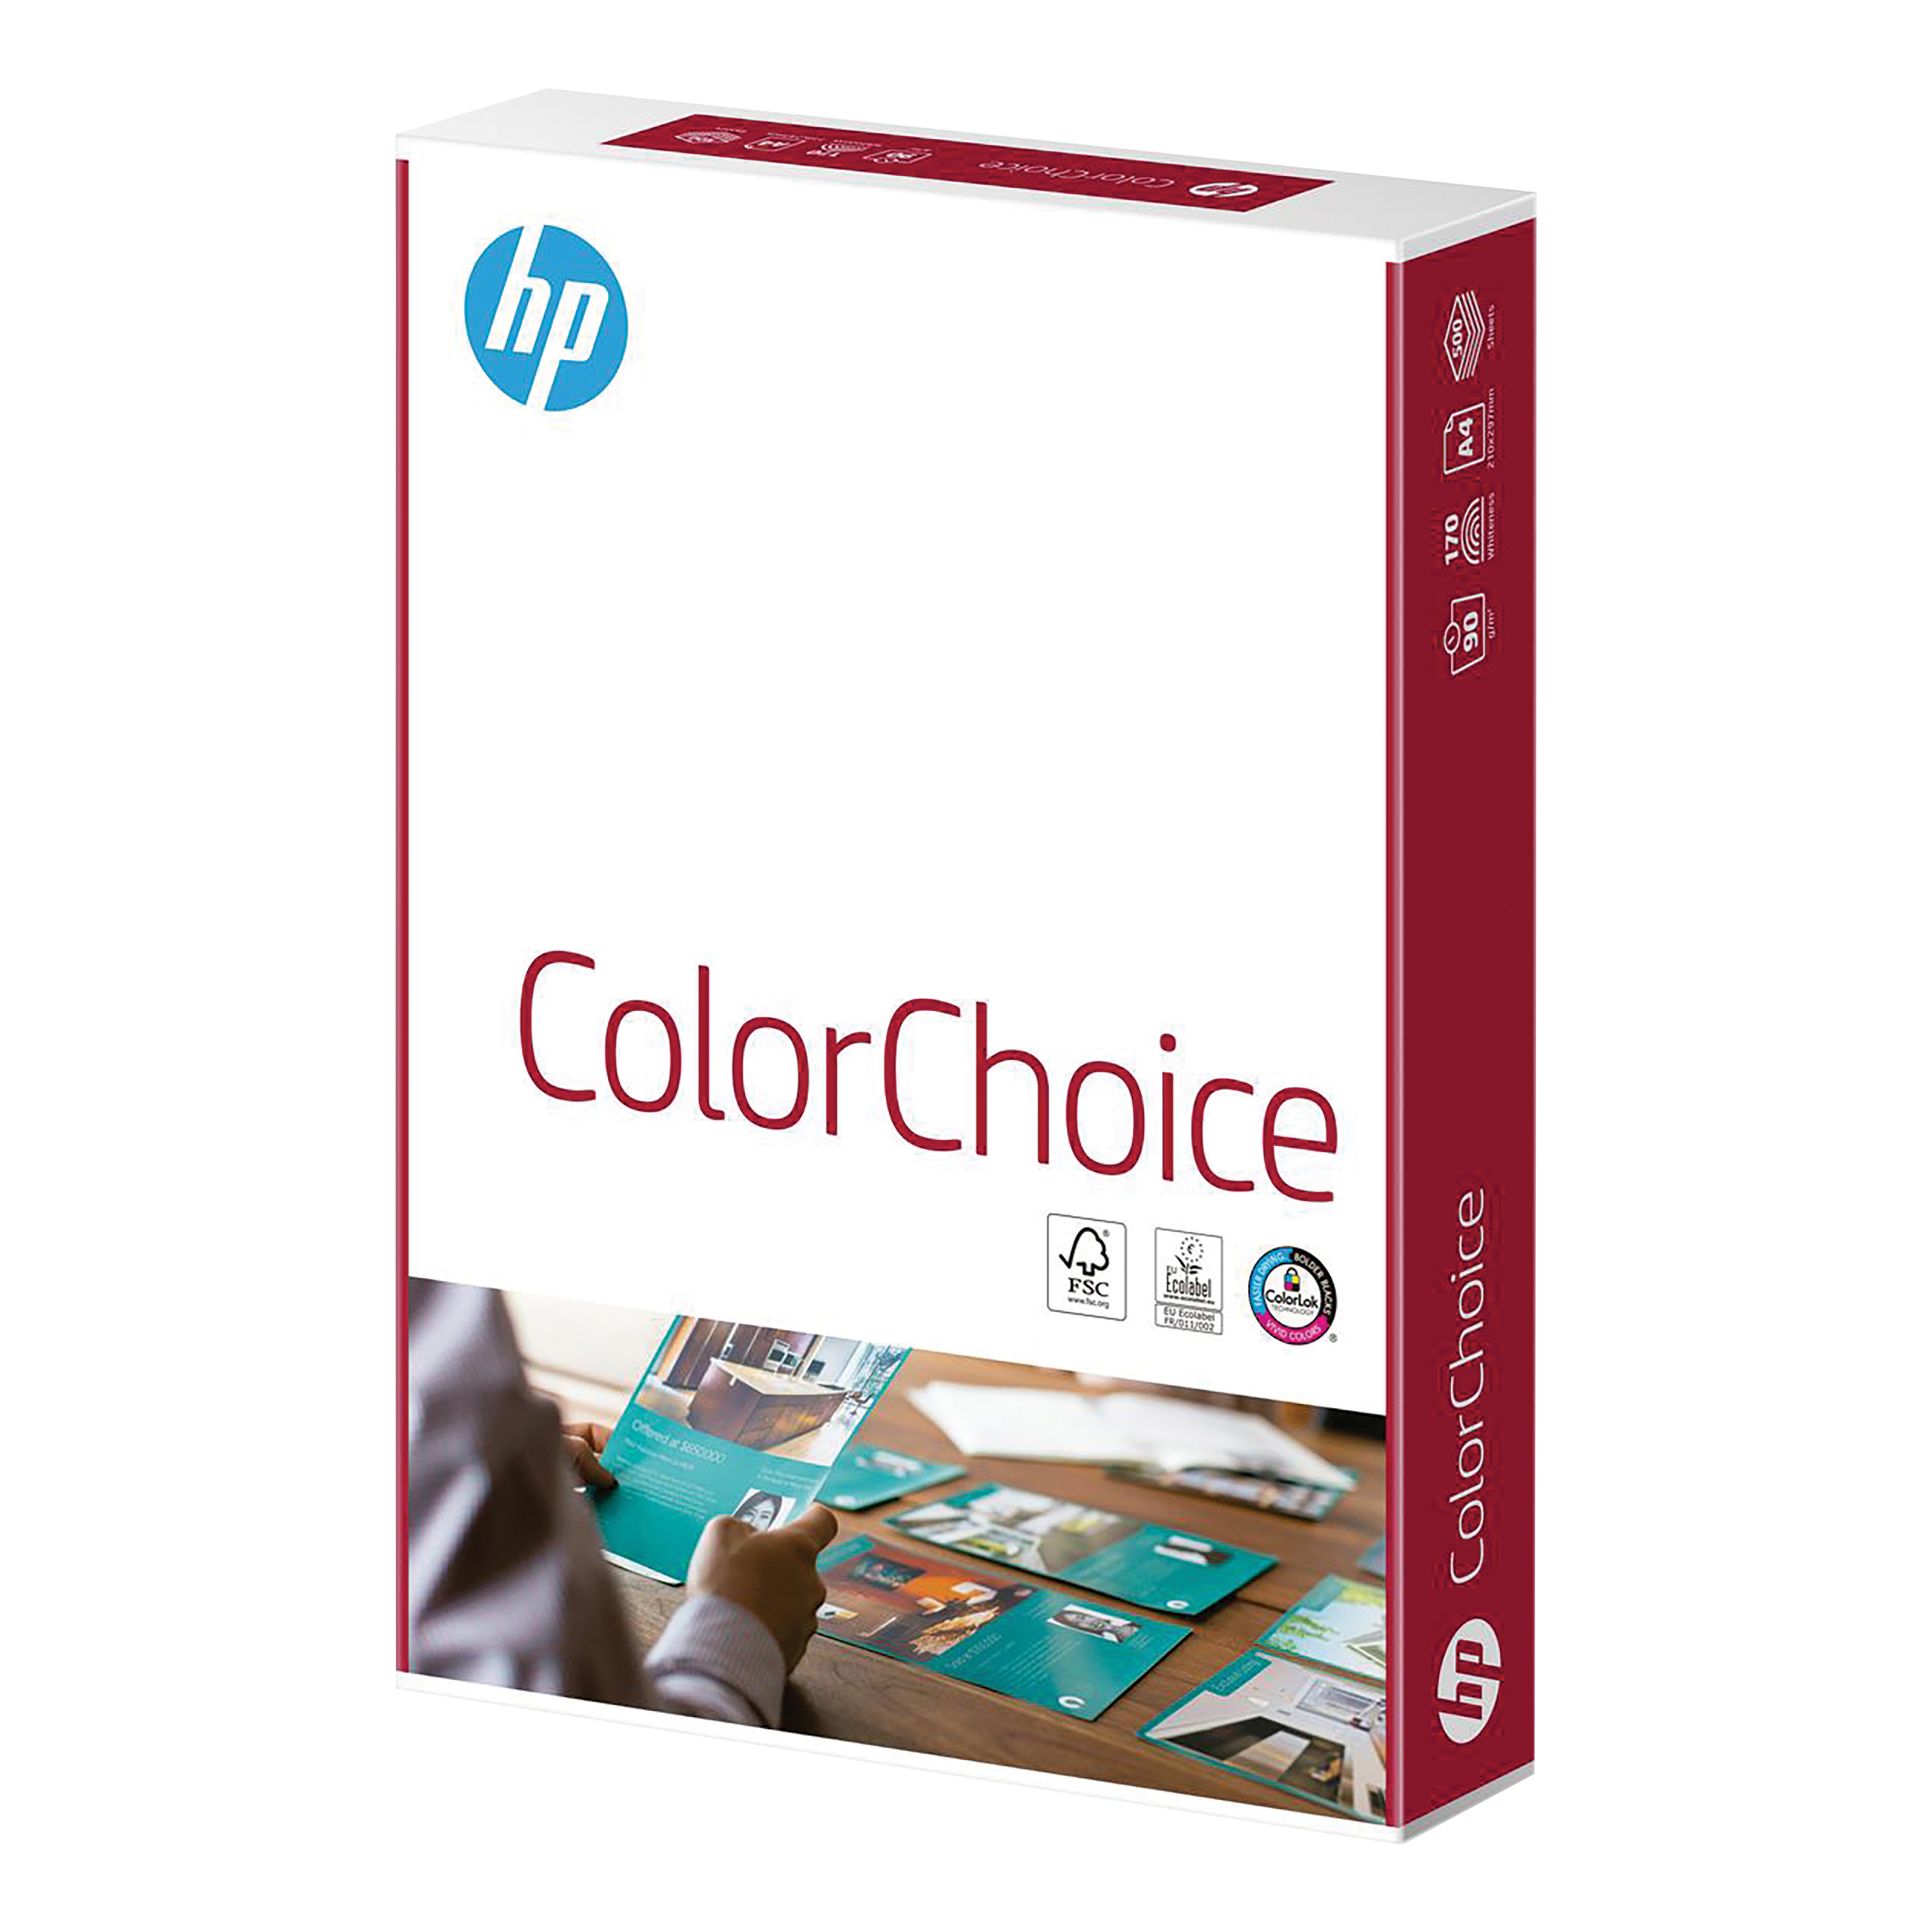 Hewlett Packard HP Color Choice Paper Smooth FSC Colorlok 90gsm A4 White Ref 94294 500 Sheets